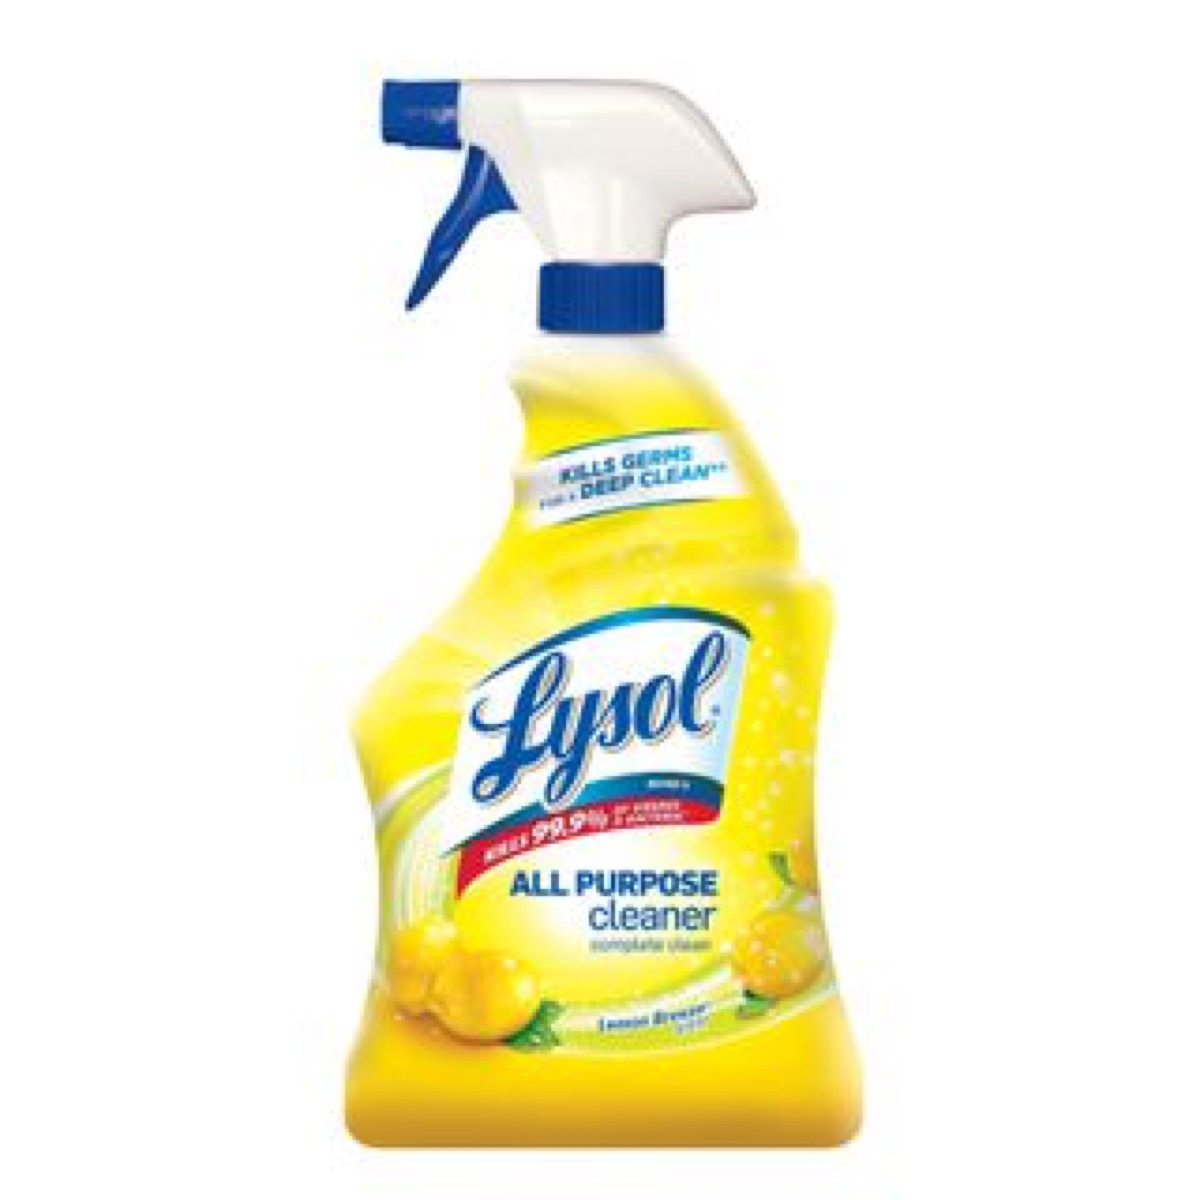 Lysol Brand All Purpose Cleaner